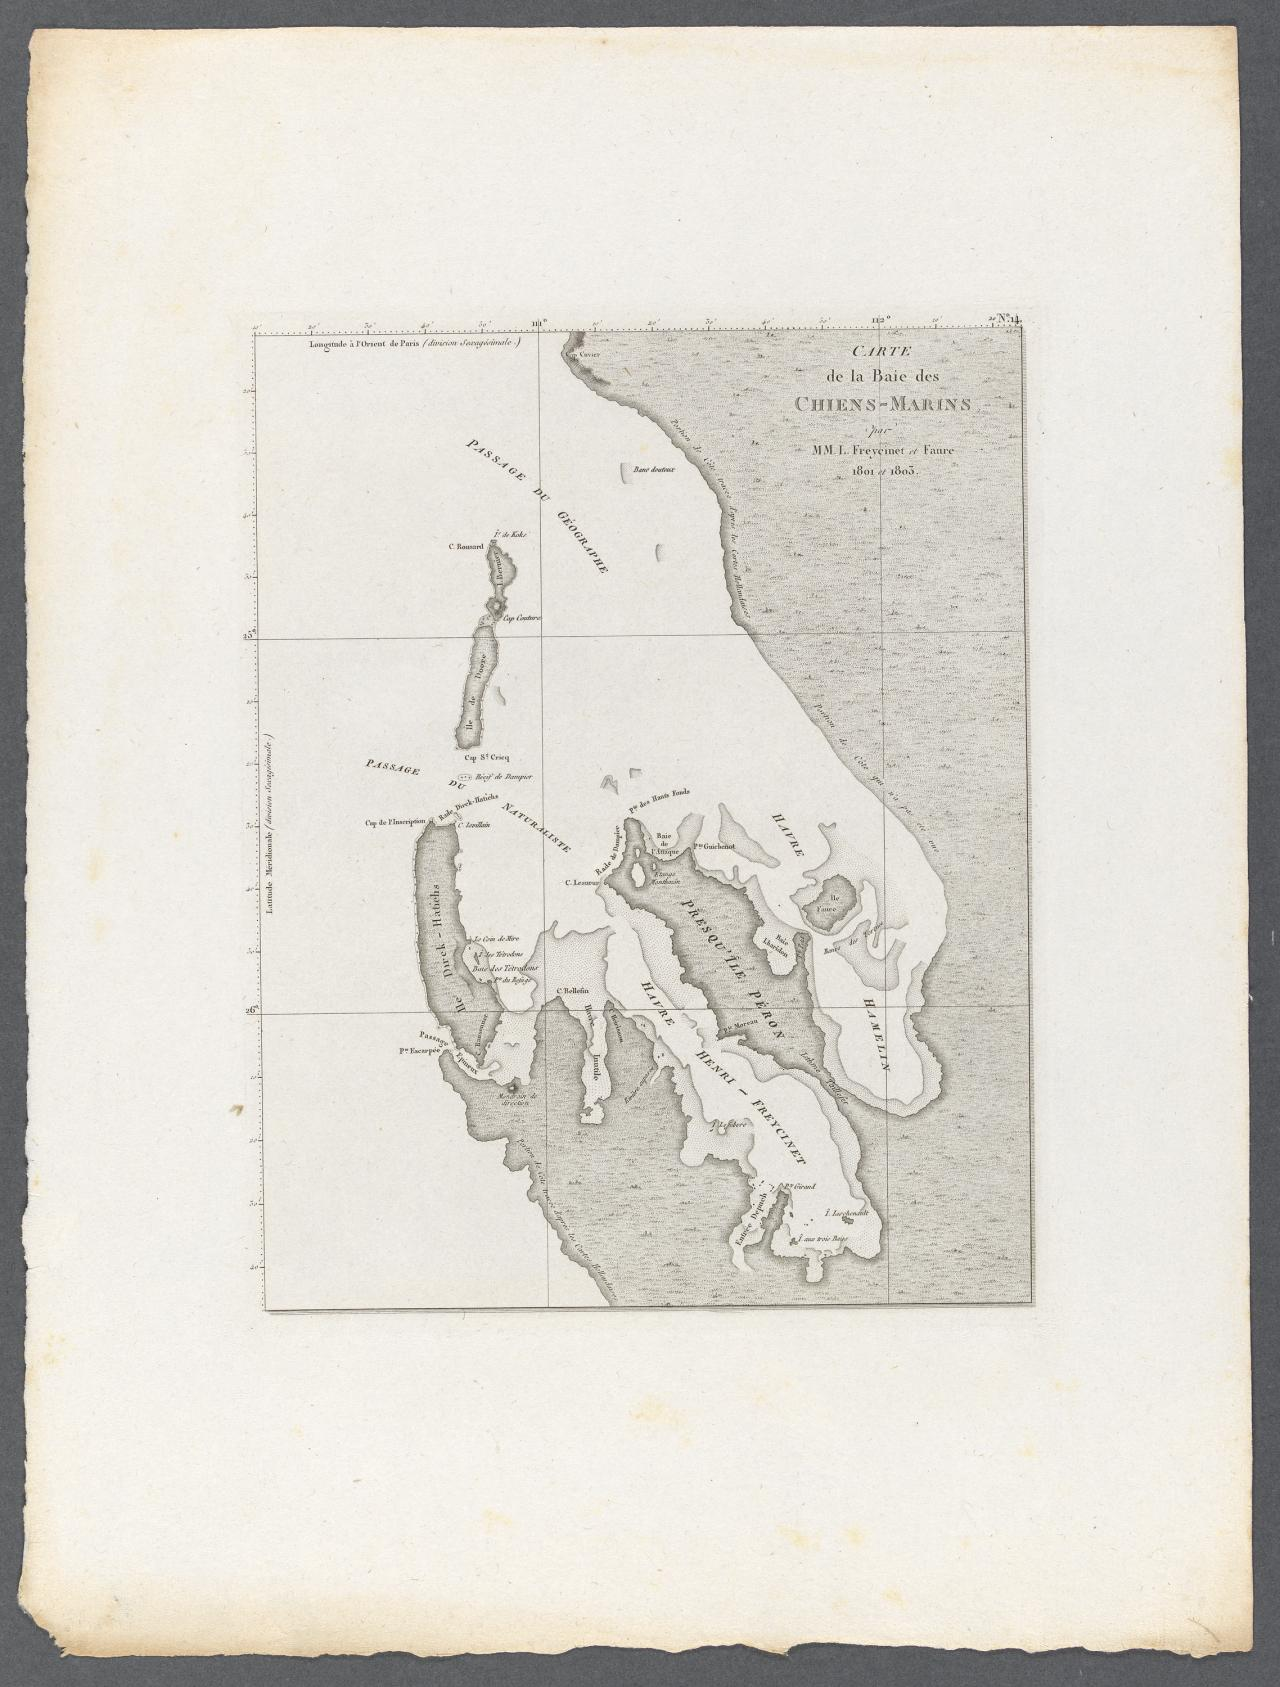 Chart of Shark Bay, Eendracht Land (by Louis Freycinet and Faure, 1801 and 1803)